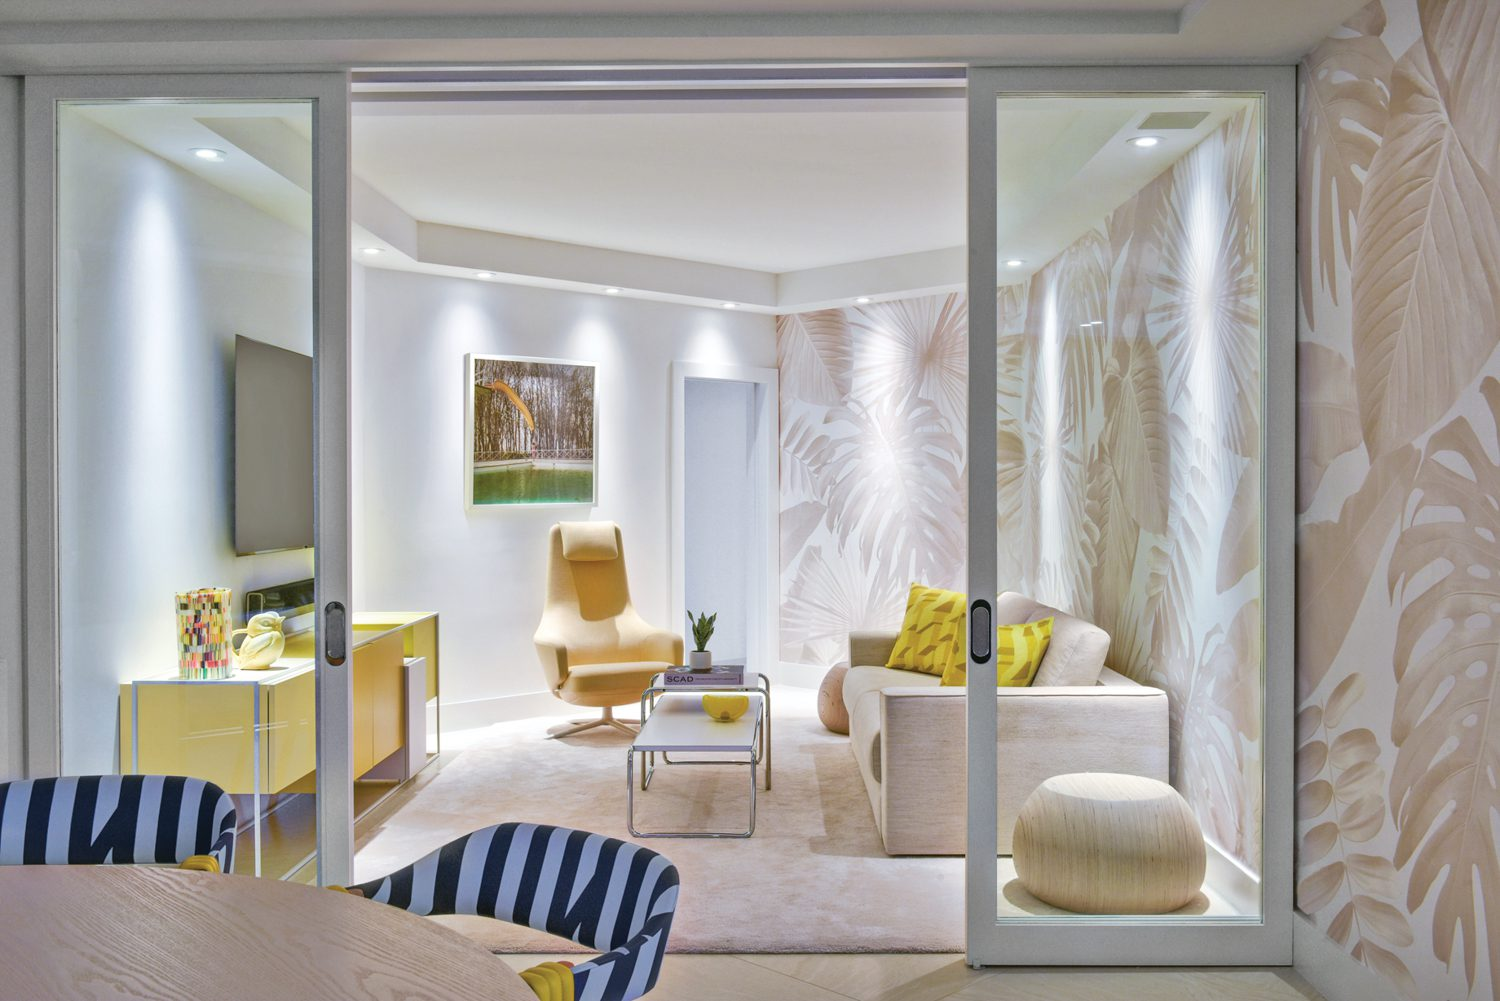 Adjacent to the dining area, a cozy media lounge cordoned off behind sliding glass doors features Antonio Citterio's Repos lounge and Yellow Slide, by Annelie Vandendael.